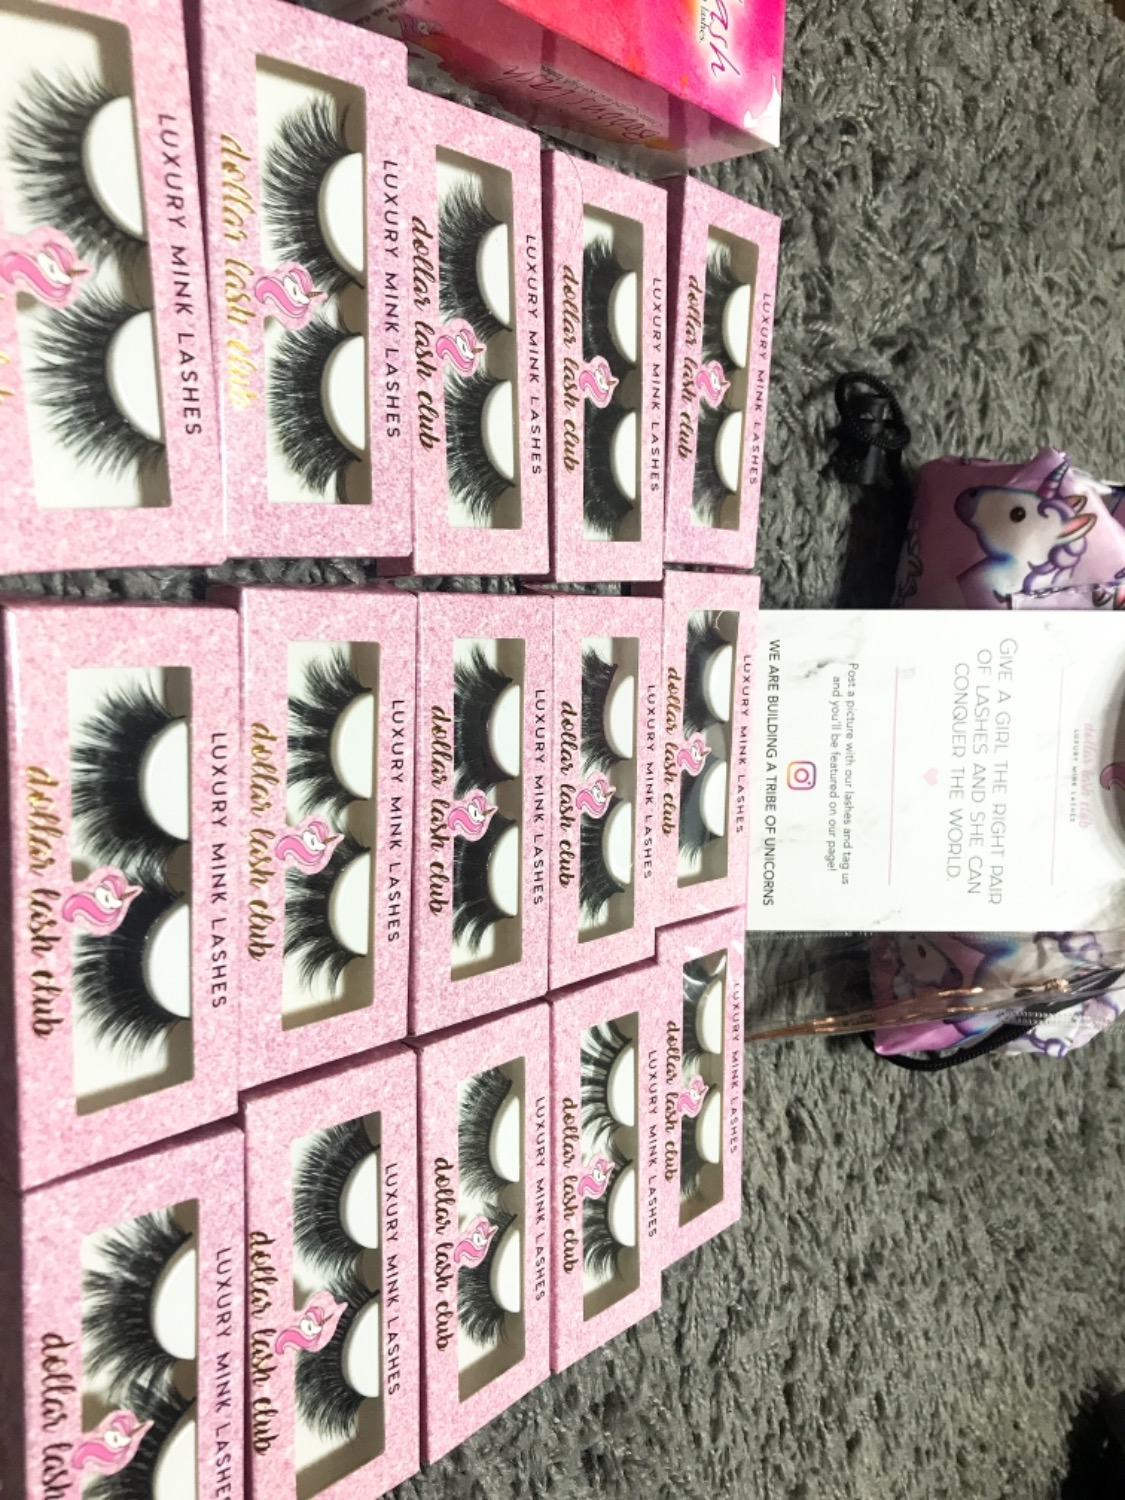 5c27597ce36 I got my 15pair lashes last week. I really like it. Each of them are so  soft, high volume and definitely my type💫 Can't wait to purchase more  onwards 💎